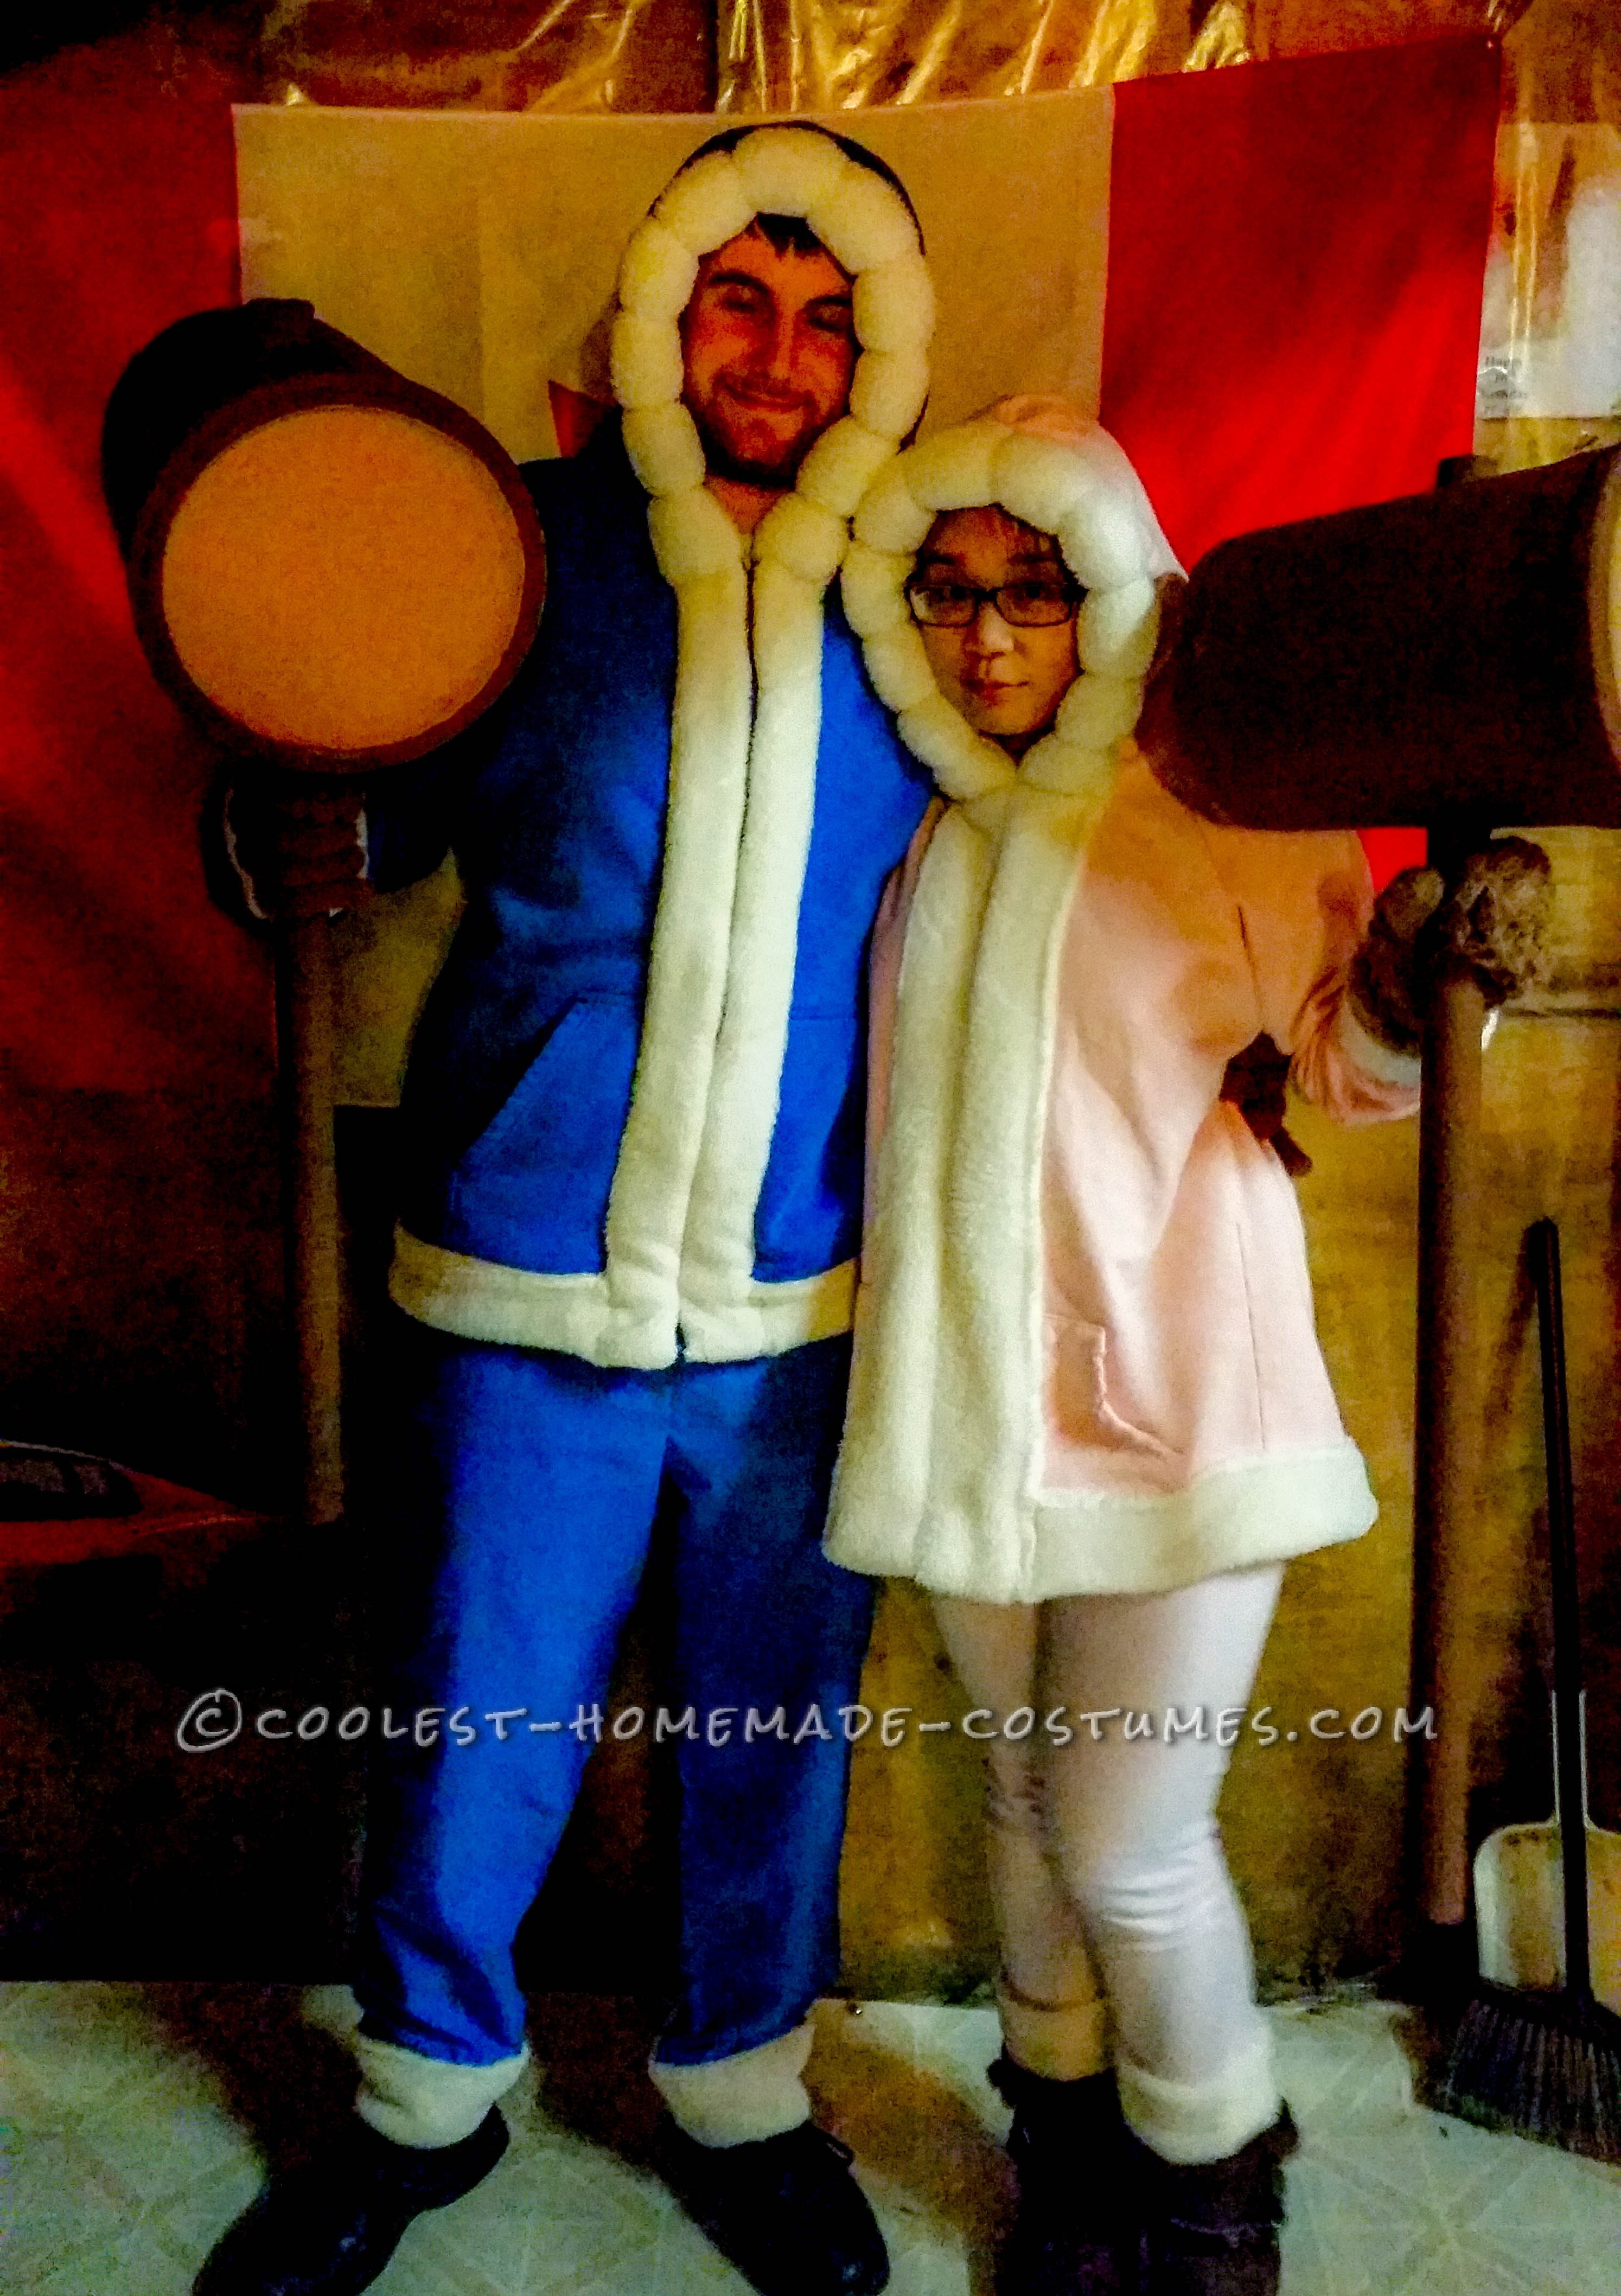 chillingly accurate ice climbers costumes from super smash bros